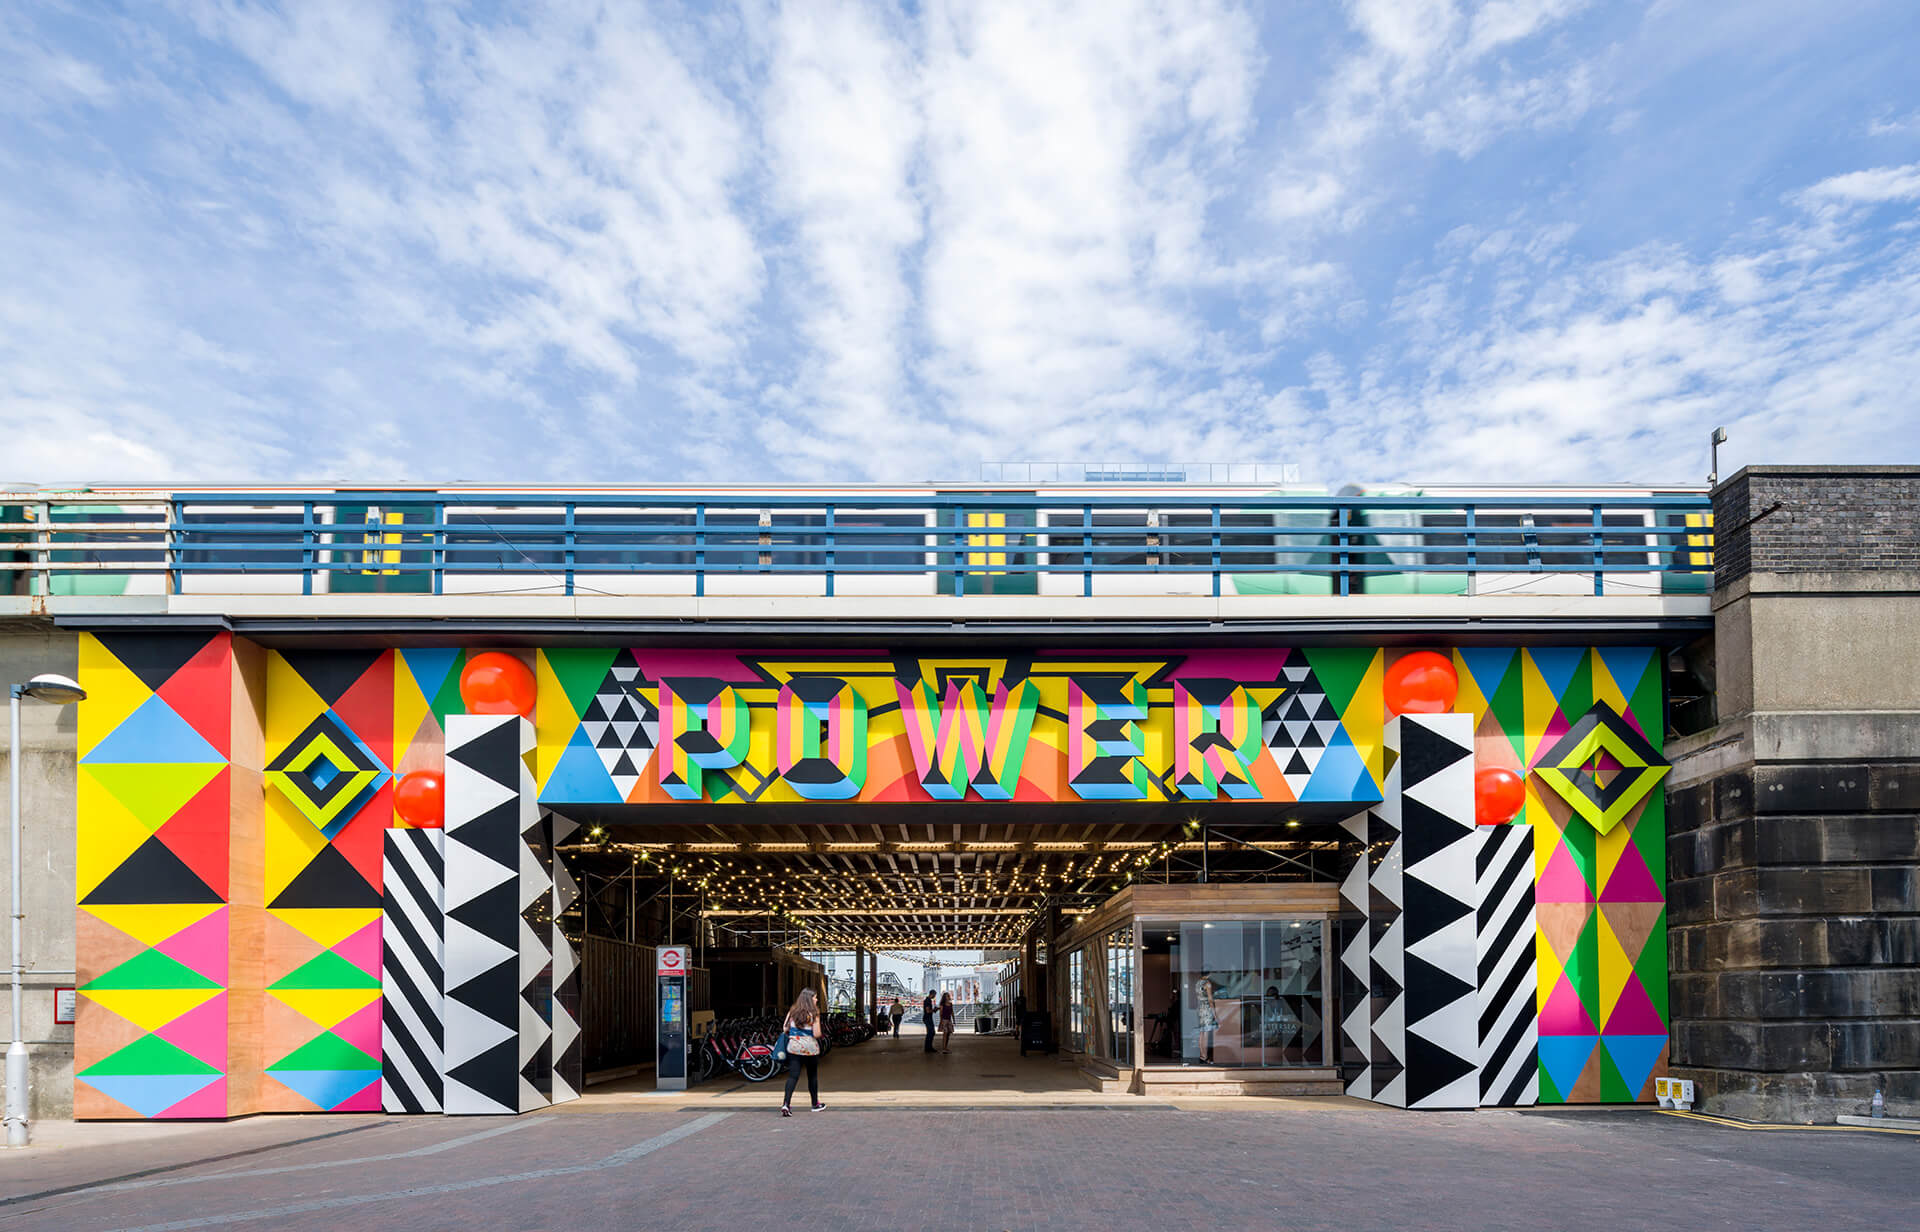 Myerscough's permanent site outdoor public art installation Power at Battersea Power Station, London | Morag Myerscough | Women in Design 2020+| STIRworld